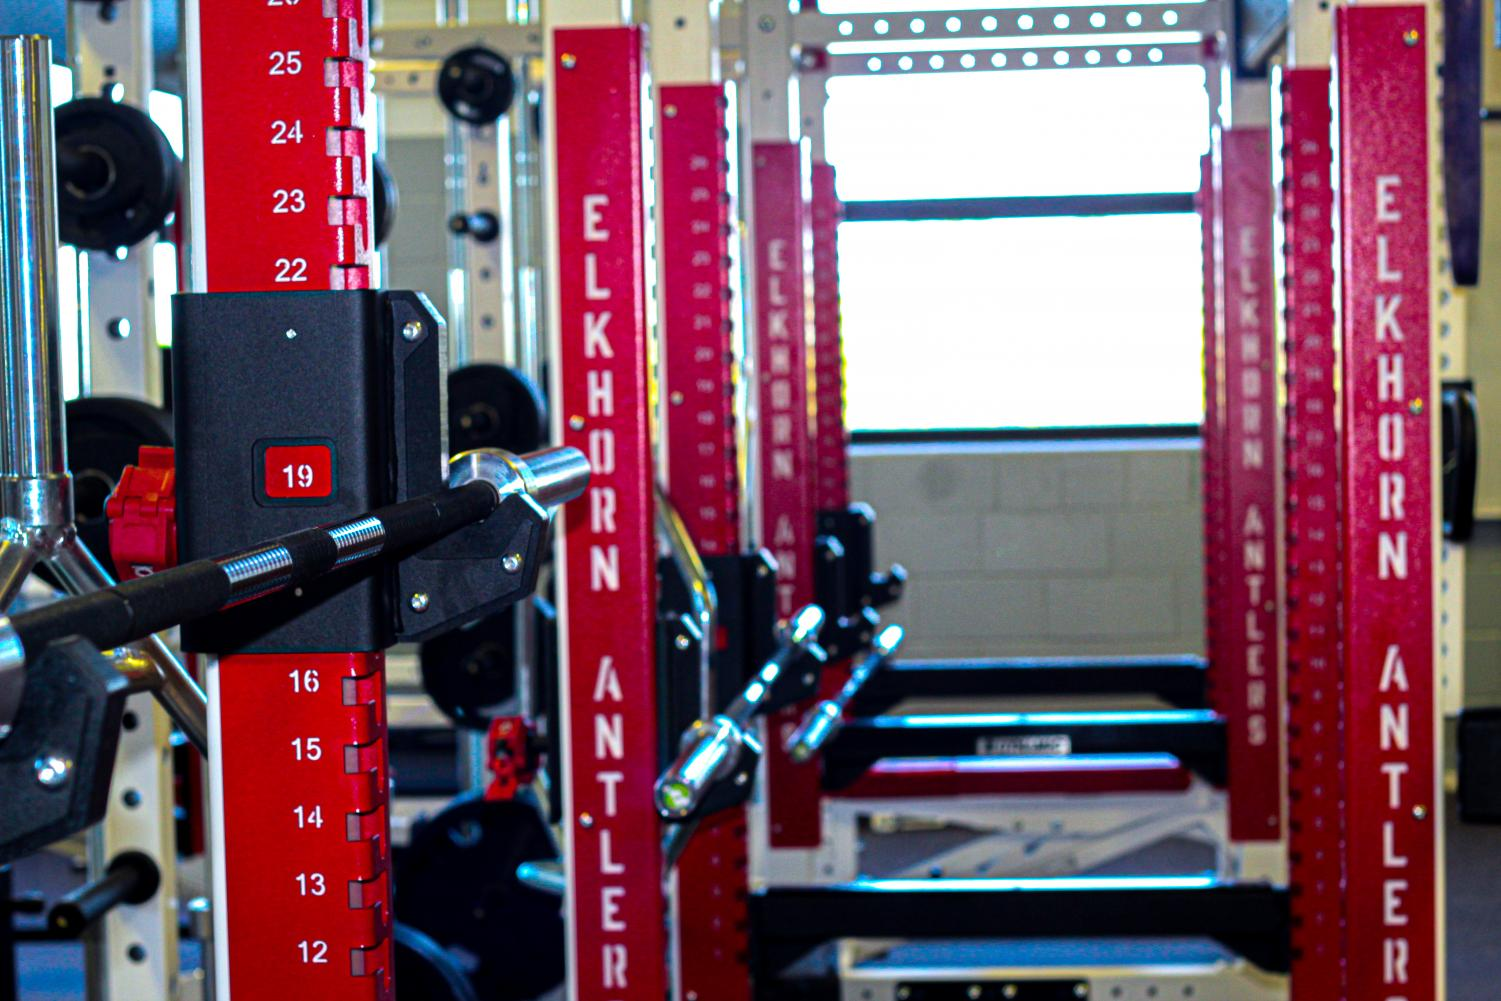 New squat racks are one of many new features in the renovated weight room. PE classes and sports teams were first able to use the equipment in late August.